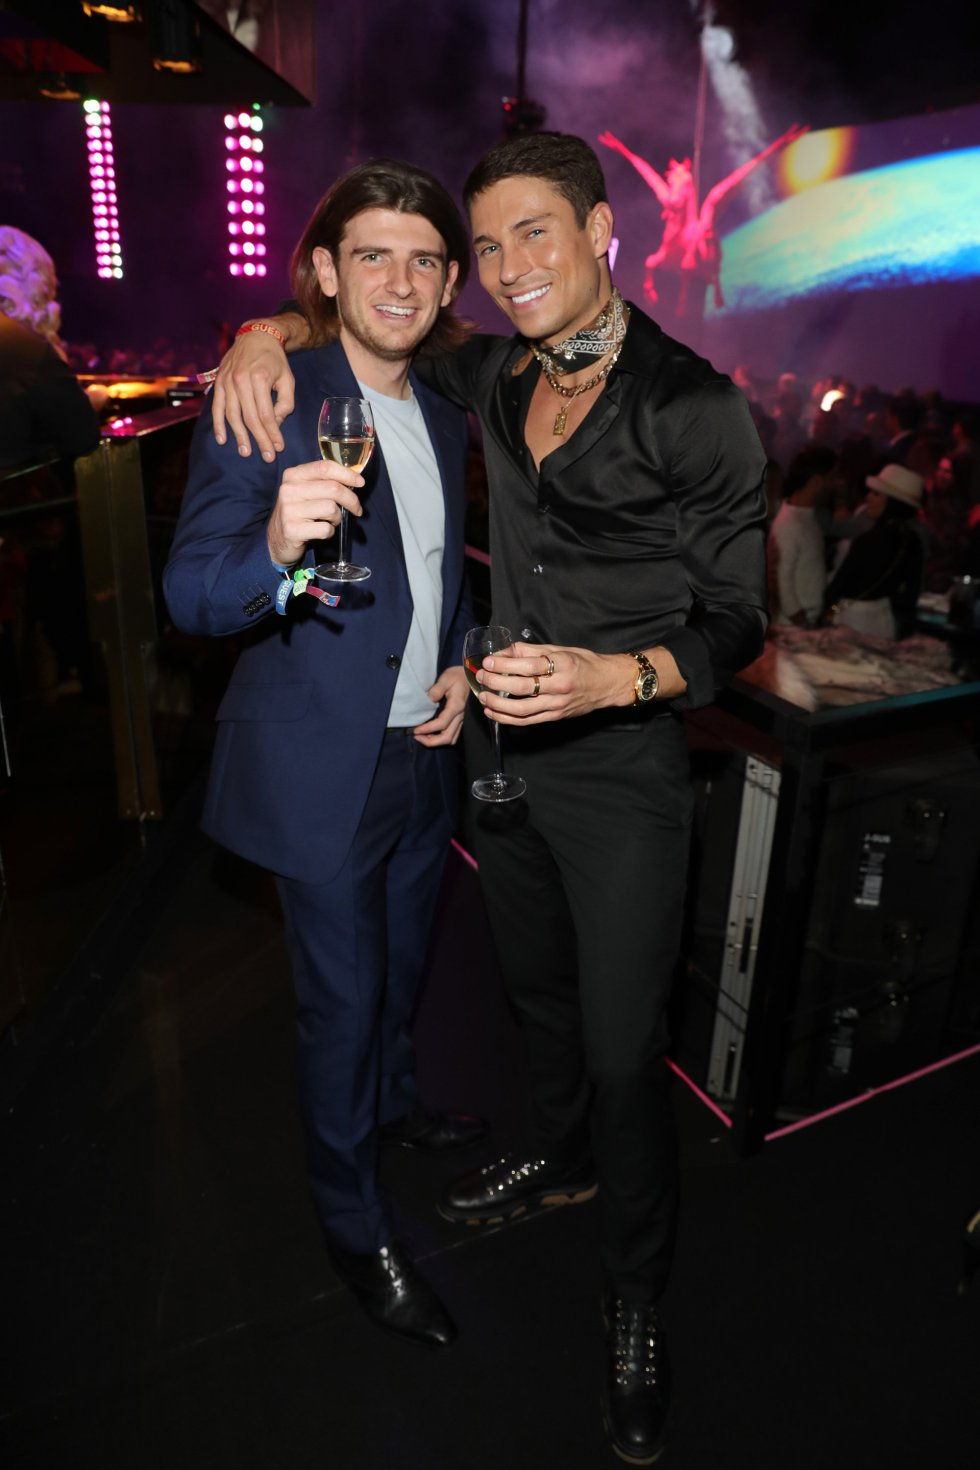 BILBAO, SPAIN - NOVEMBER 04: Joey Essex (R) and a guest attend the MTV EMAs 2018 after show party at Bilbao Exhibition Centre on November 4, 2018 in Bilbao, Spain.  (Photo by Andreas Rentz/Getty Images for MTV)